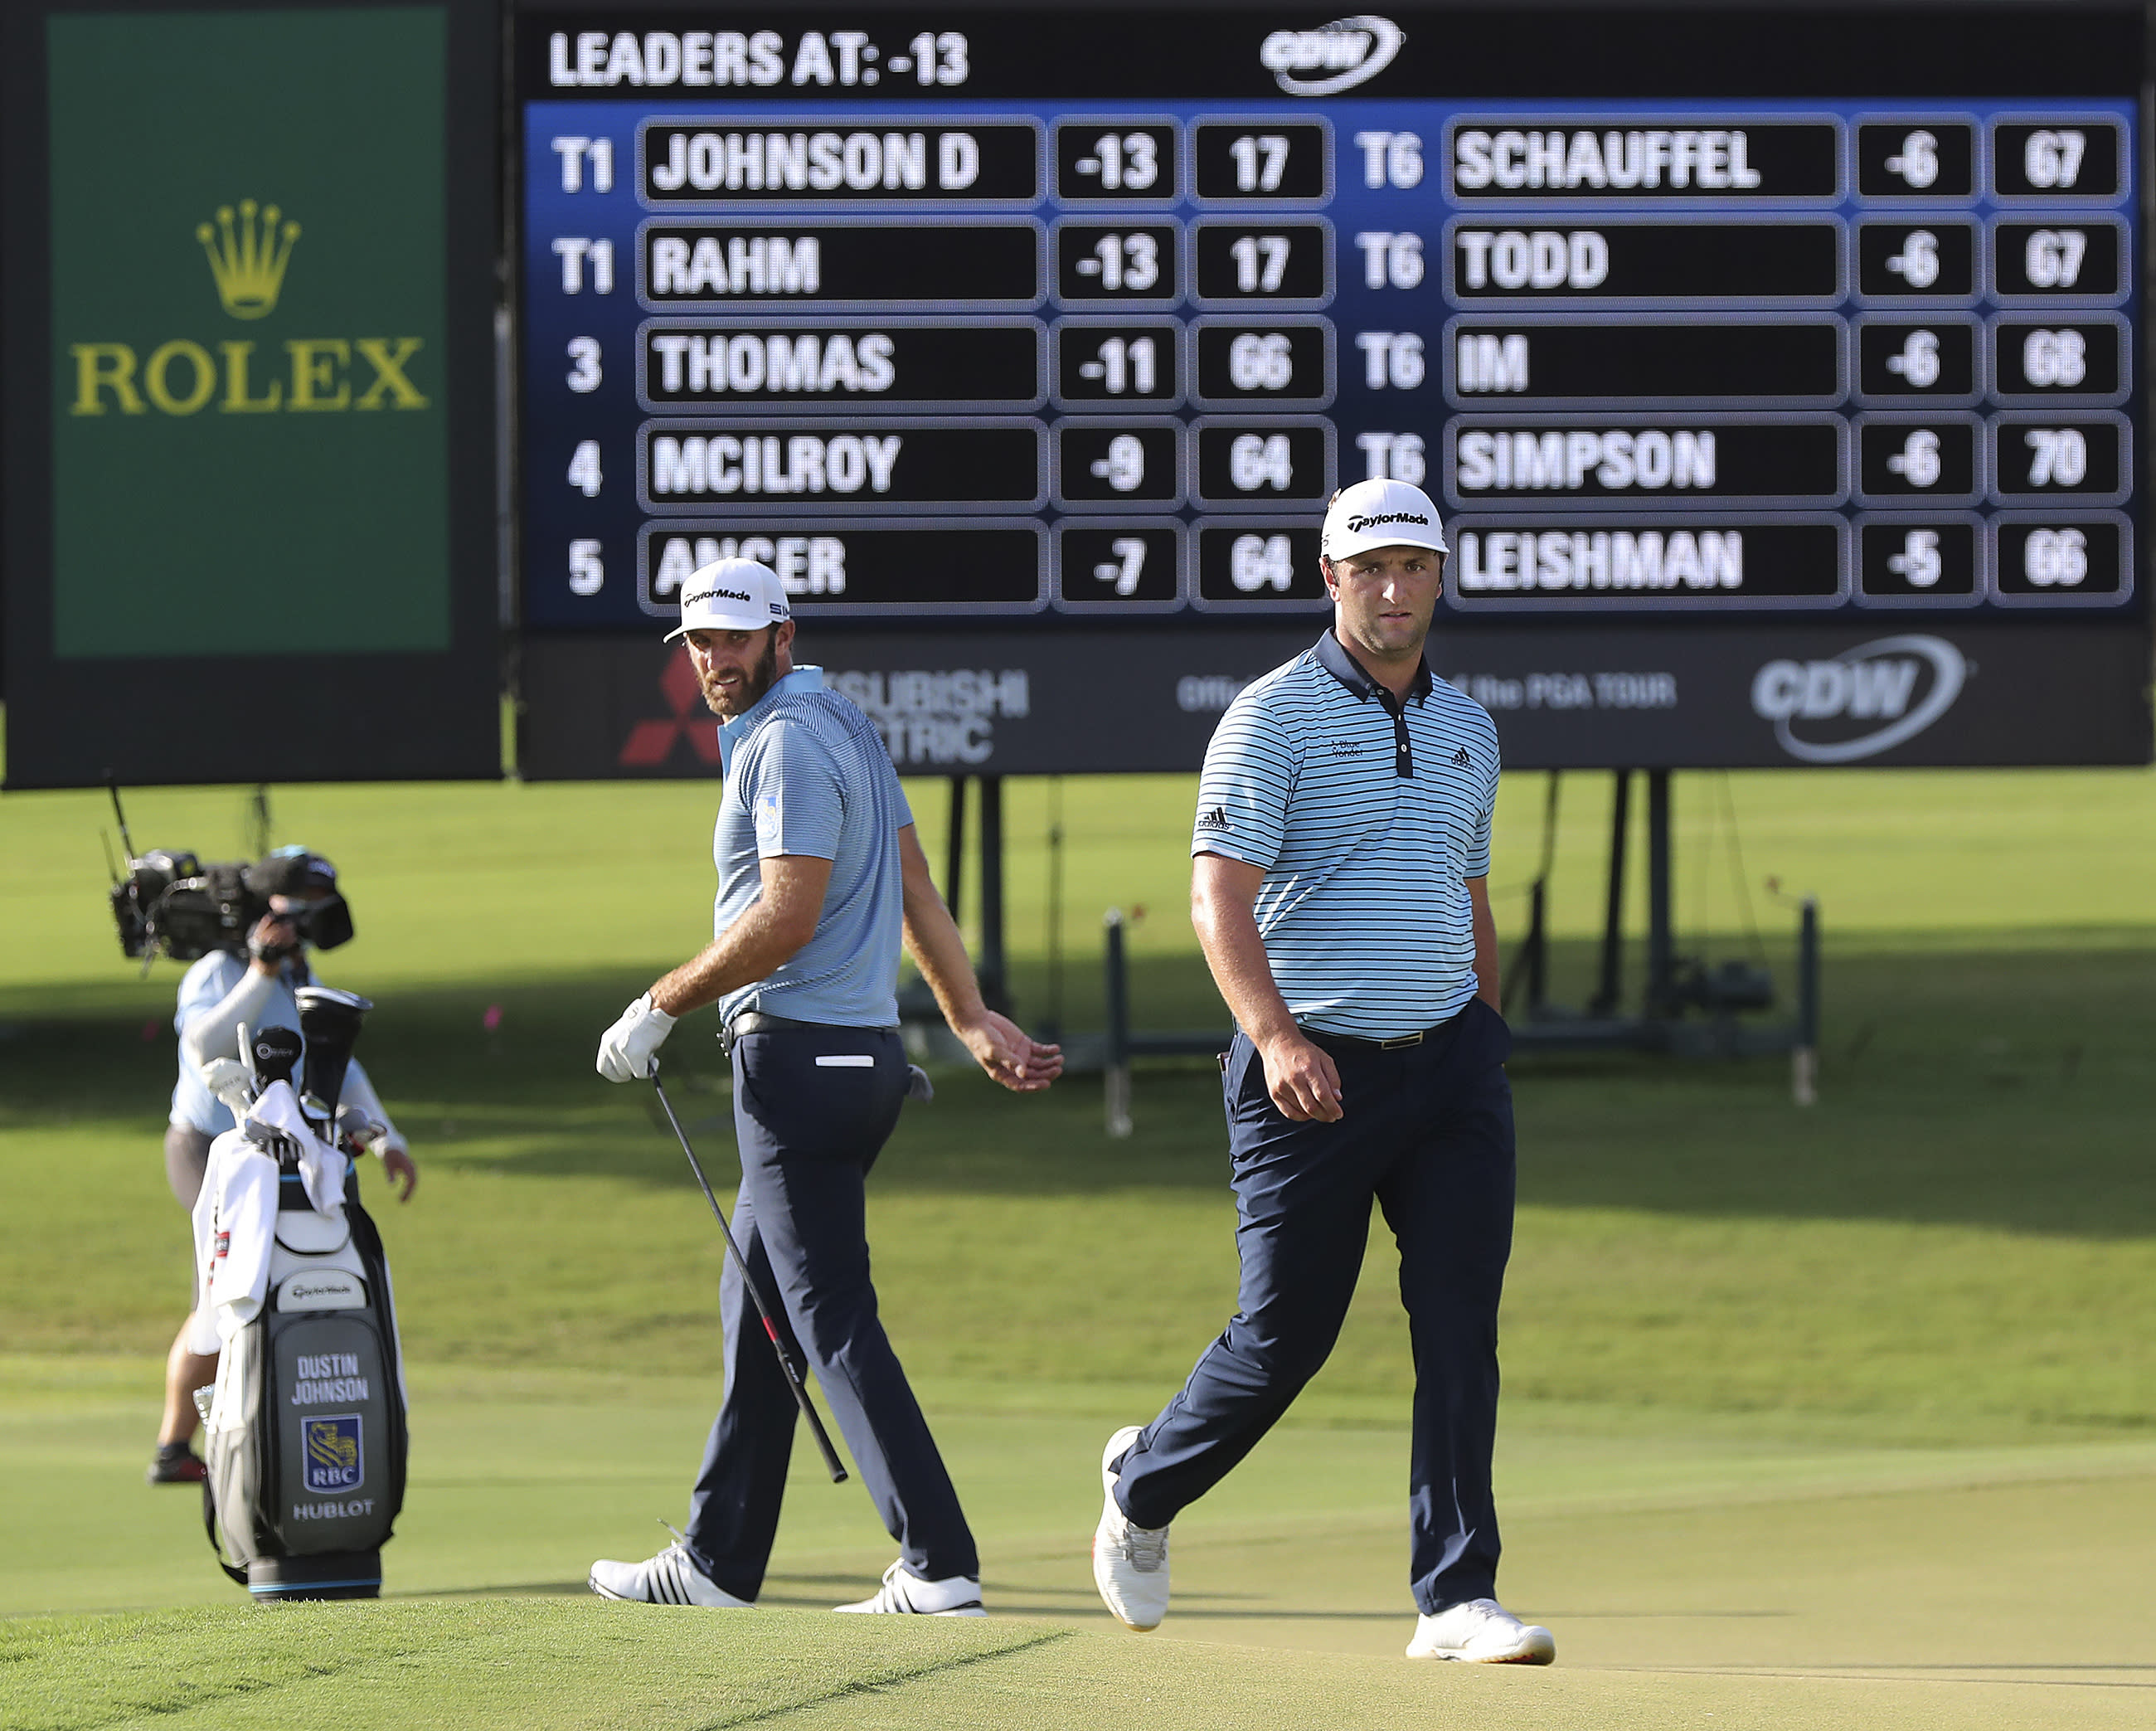 Dustin Johnson, left, and Jon Rahm check out their shots on the 18th green during the first round of the Tour Championship golf tournament at East Lake Golf Club on Friday, Sept. 4, 2020, in Atlanta. (Curtis Compton/Atlanta Journal-Constitution via AP)